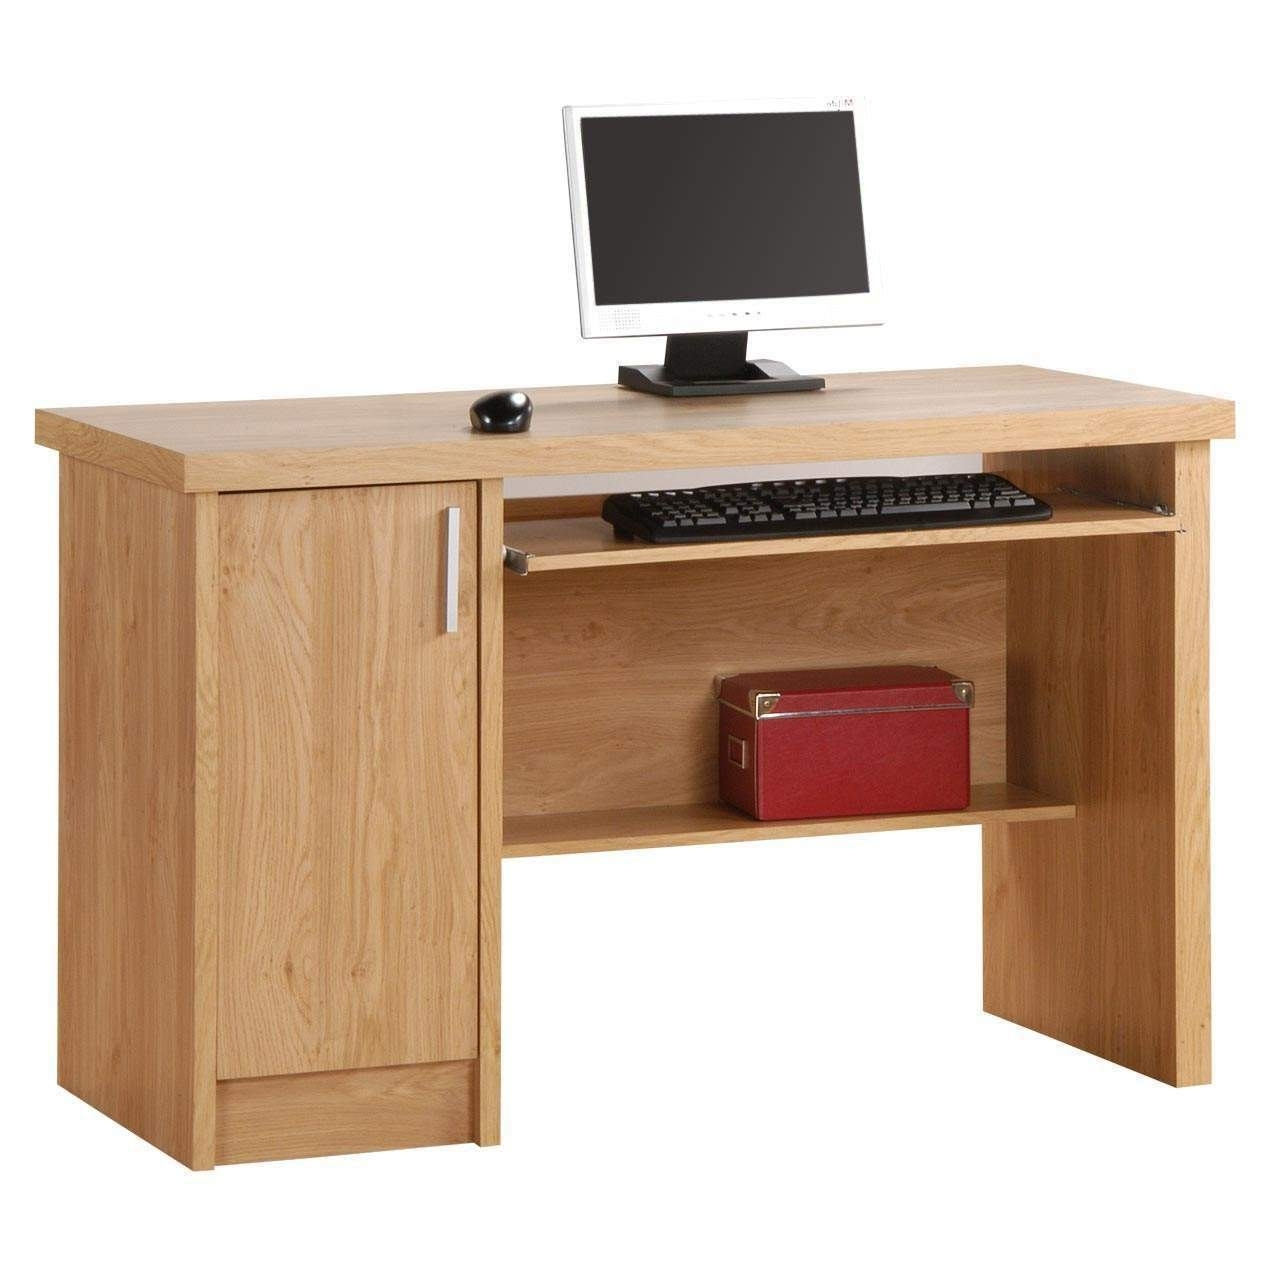 Good Corner Computer Desk Oak: 15 Cool Computer Desk Oak Throughout Most Recent Computer Desks In Oak (Gallery 14 of 20)